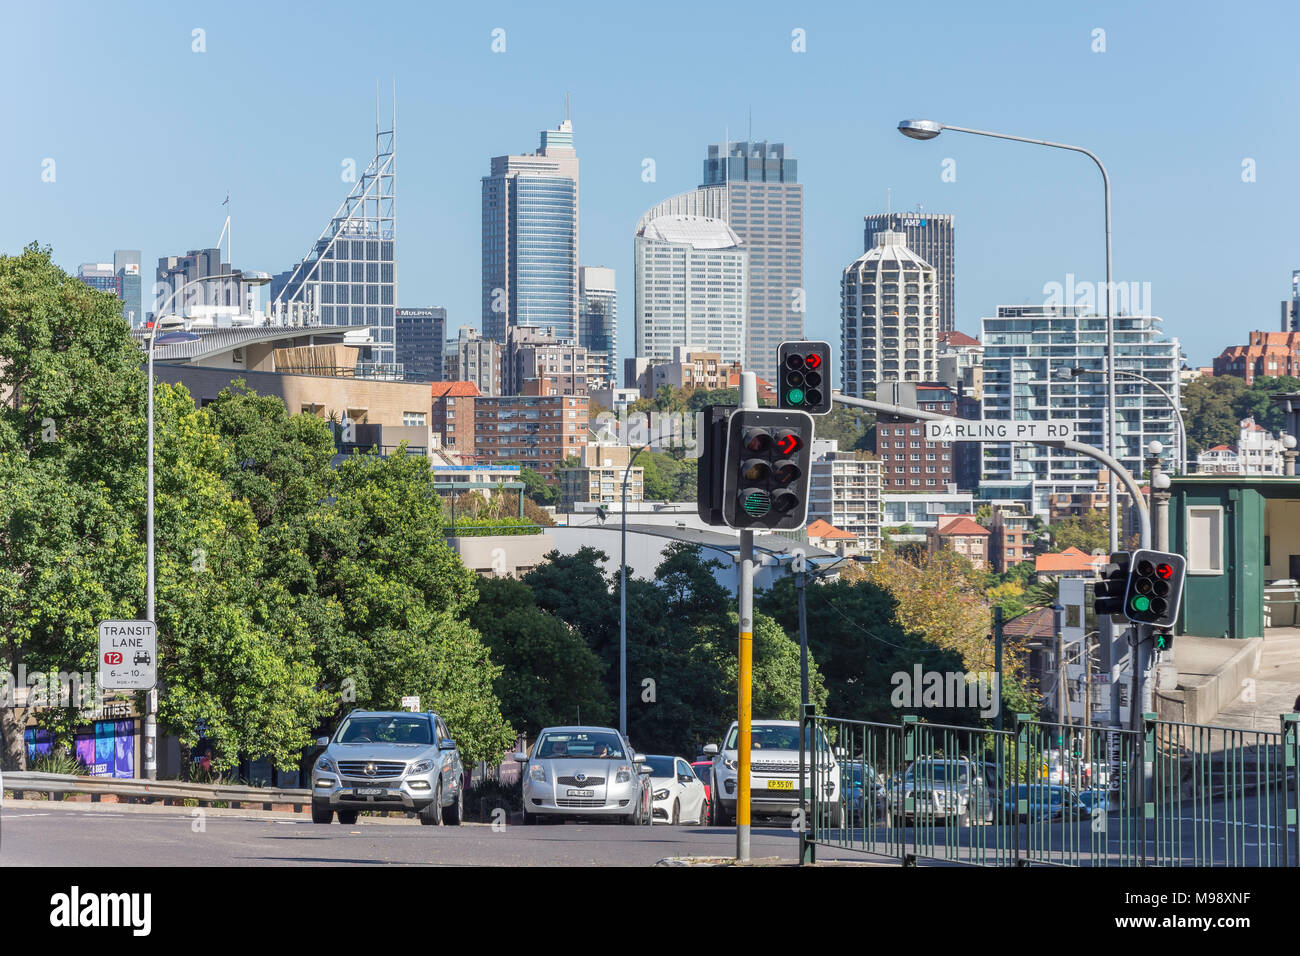 Darling Point Road, Edgecliff, Sydney, New South Wales, Australia Photo Stock